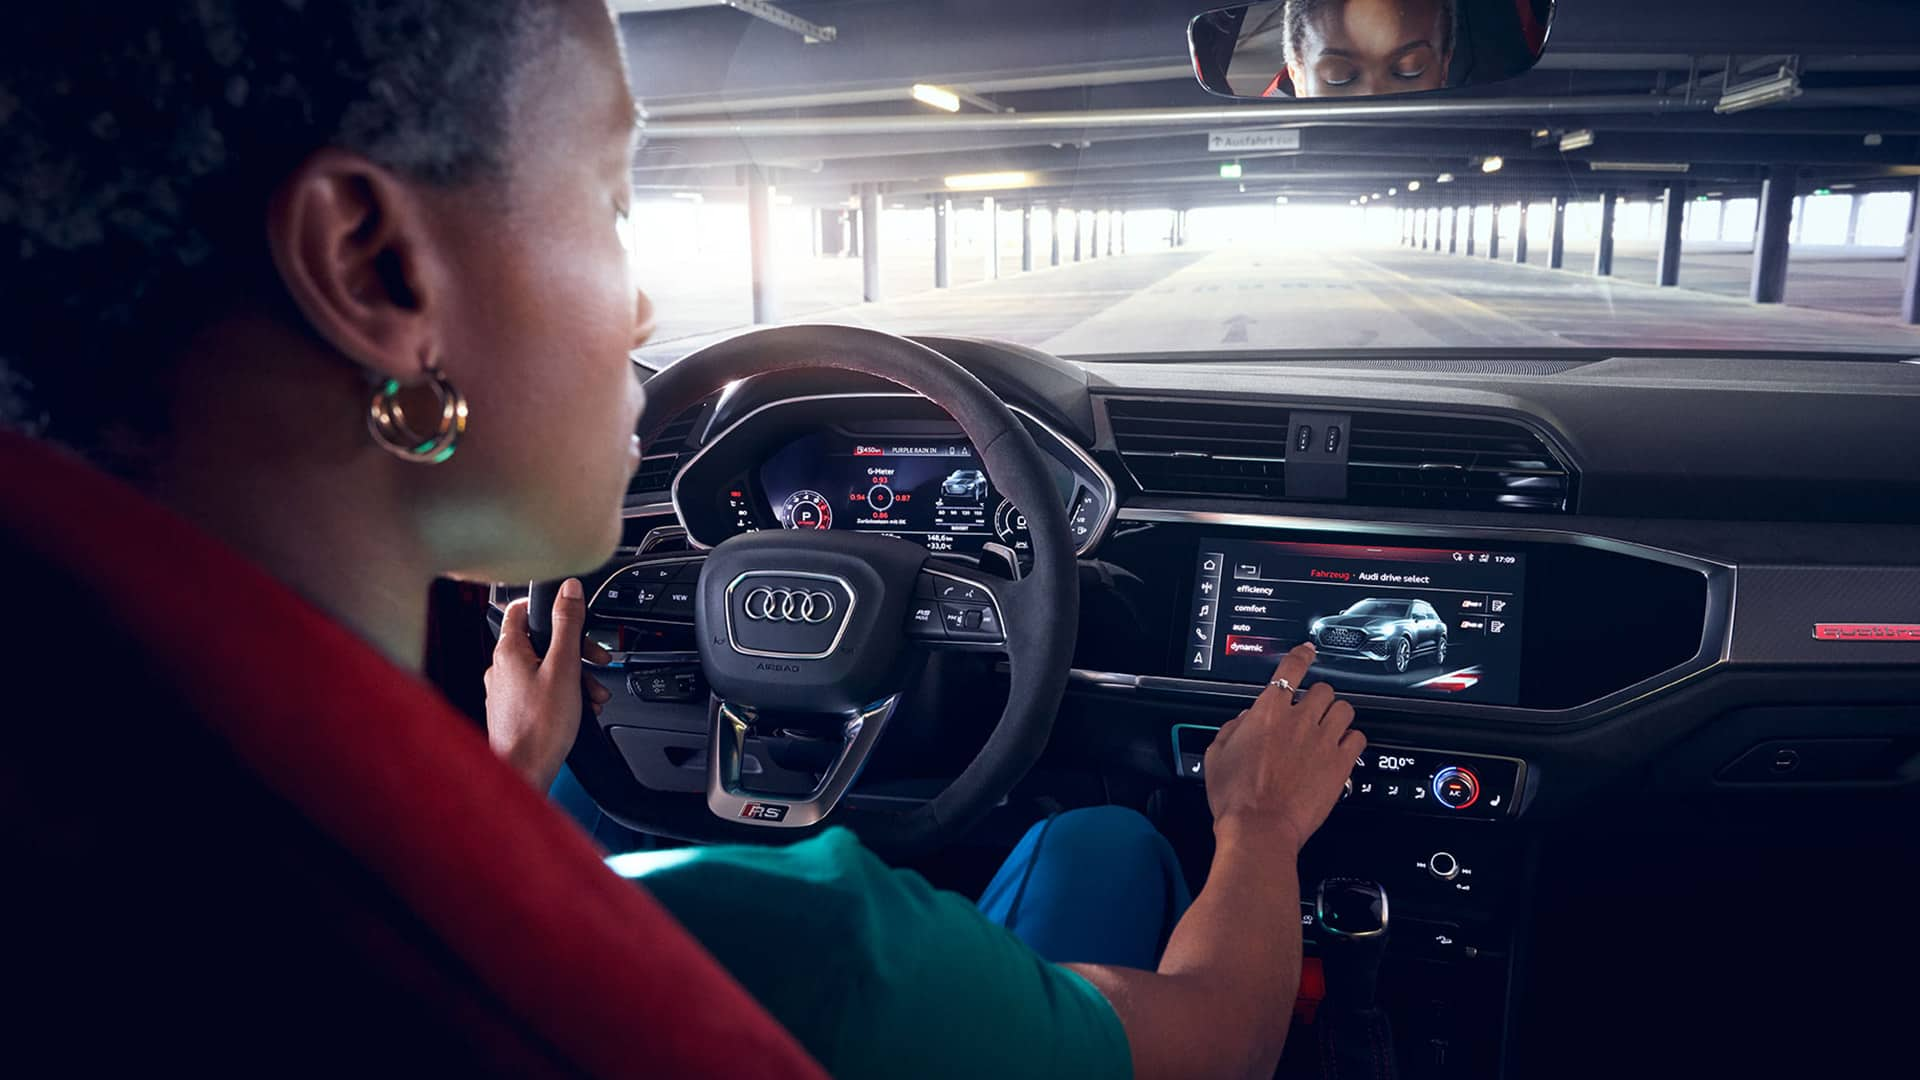 Driver operates the MMI system in the Audi RS Q3